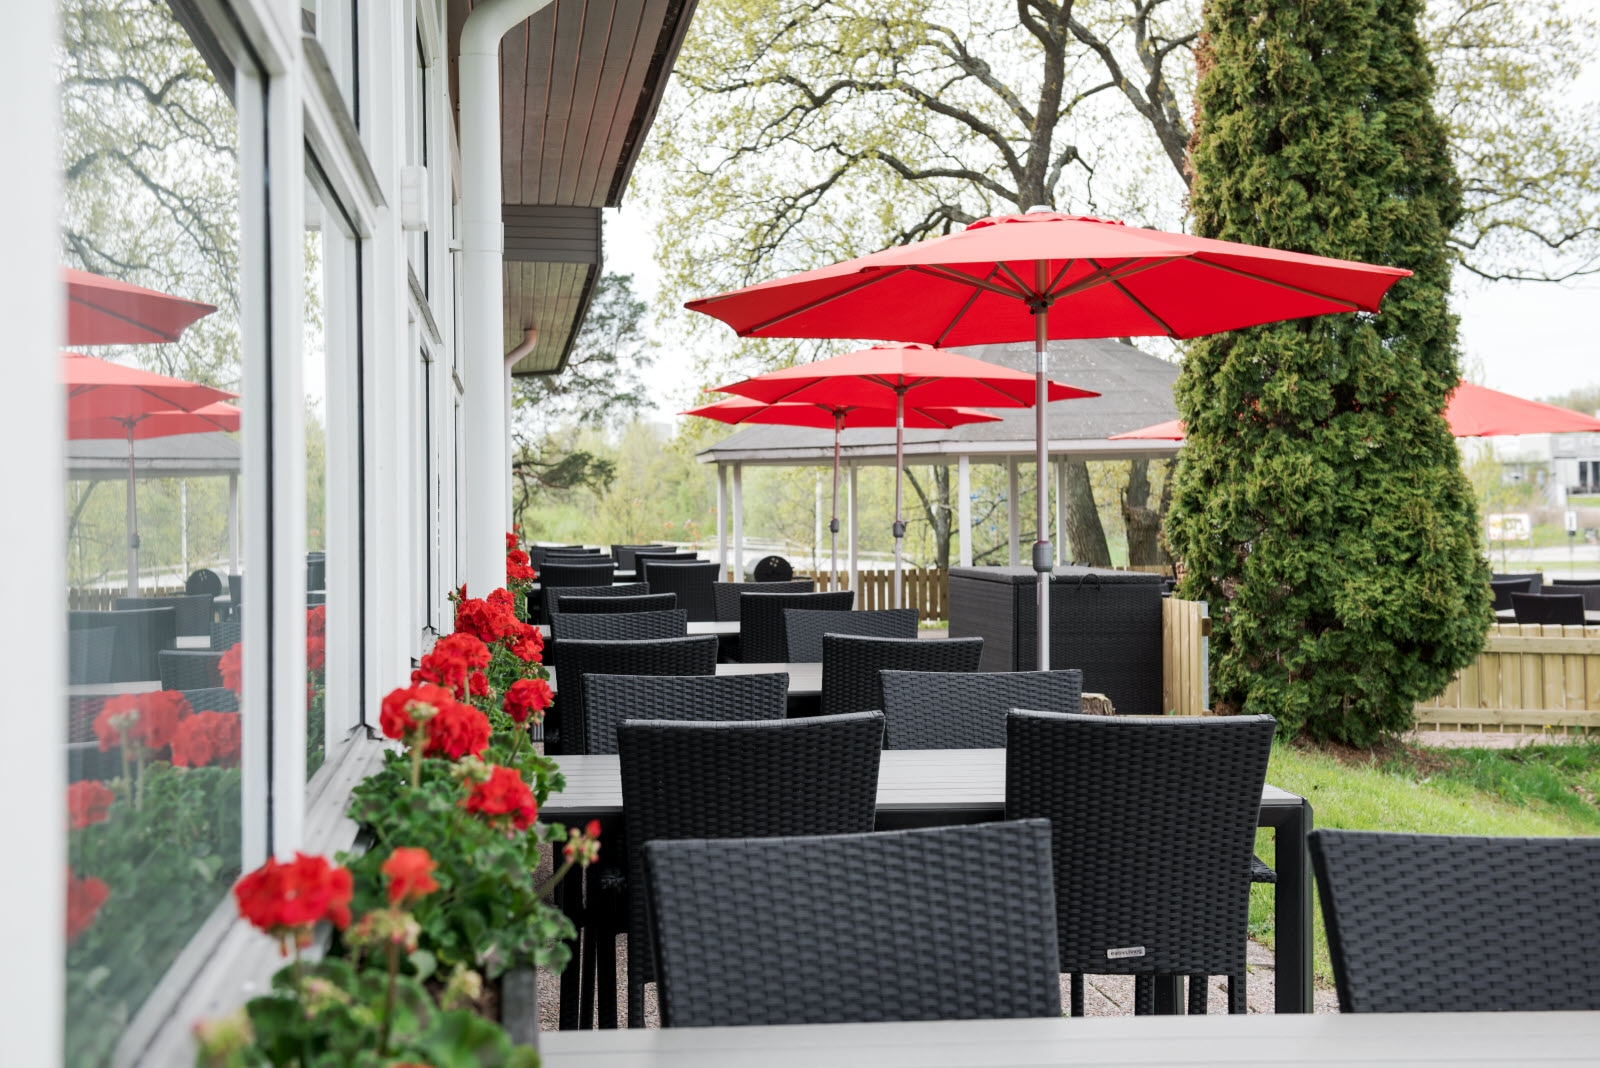 Scandic-norrkoping-nord-terrace-outdoor-restaurant.jpg